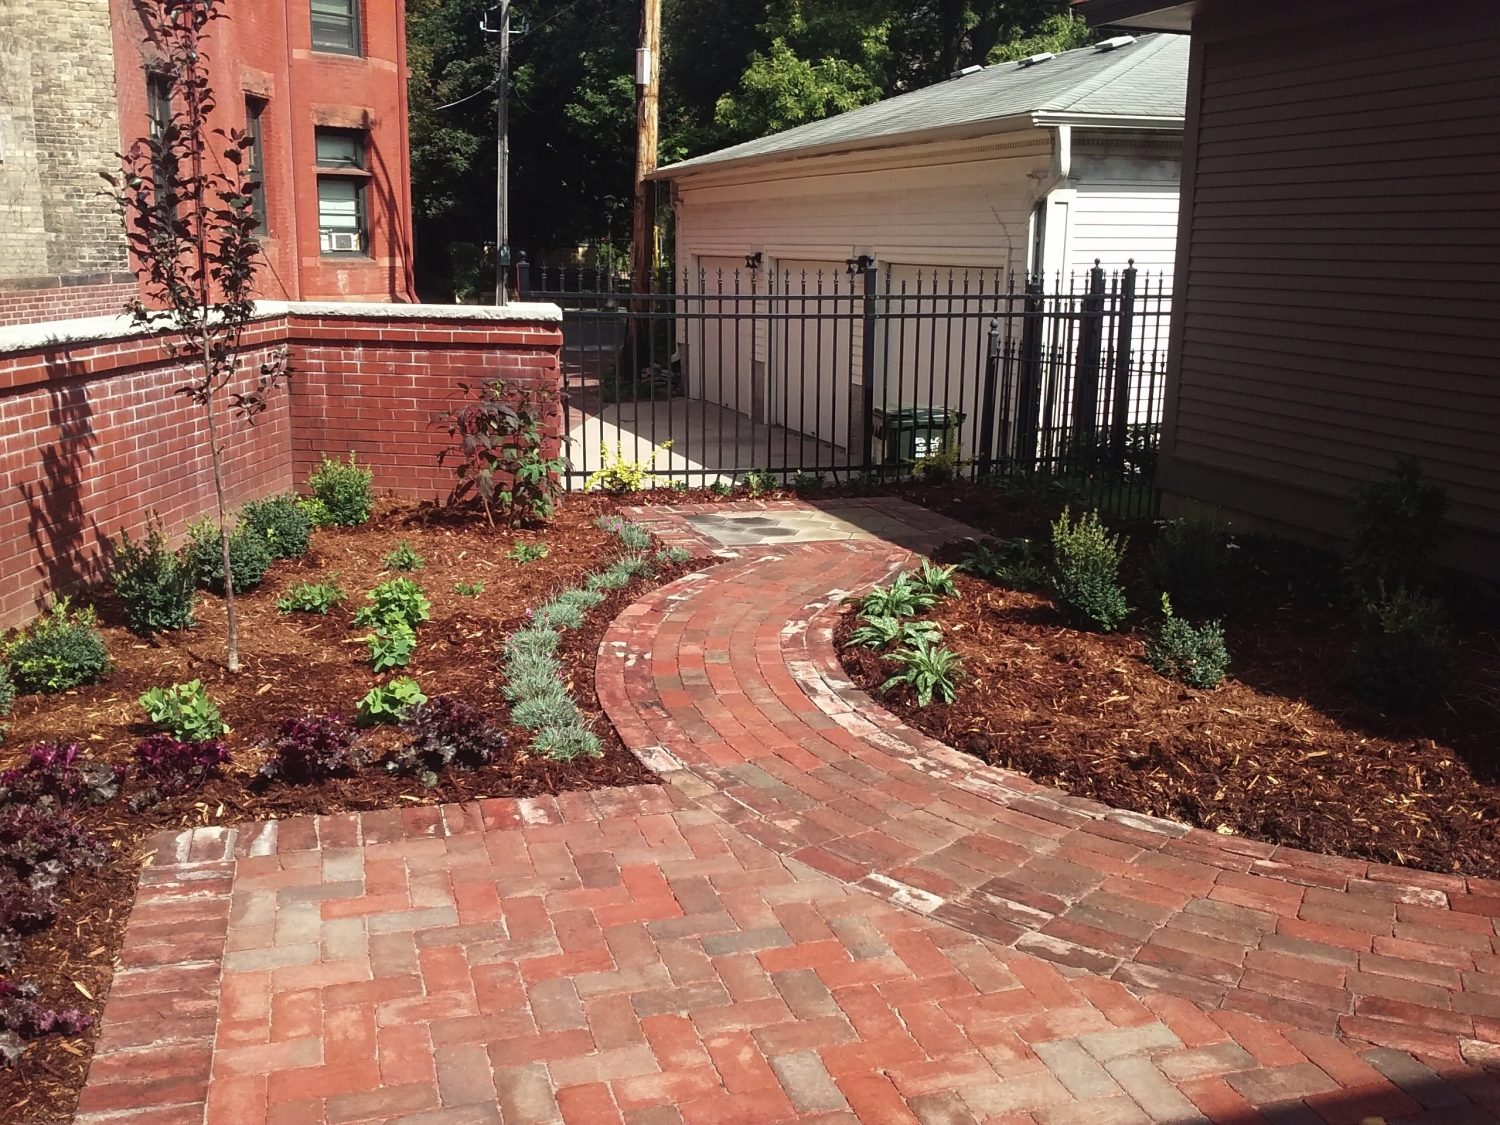 Red Brick Patio with Planting